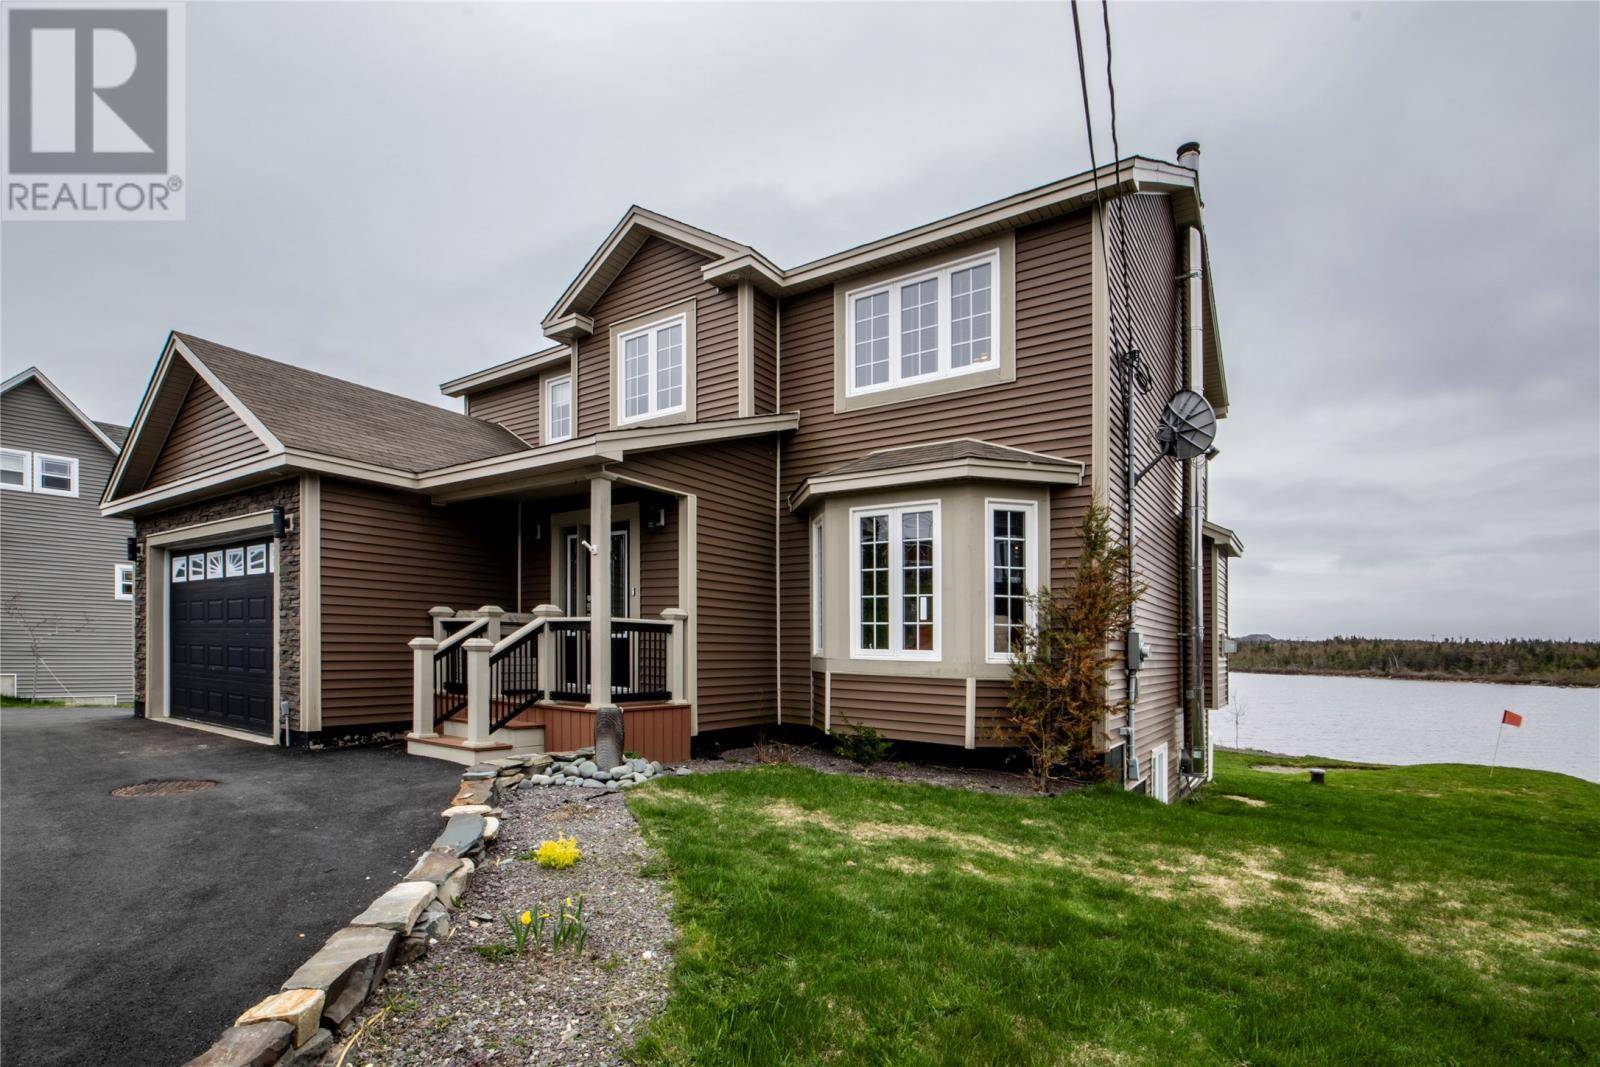 House for sale at 63 Island Cove Rd Bay Bulls Newfoundland - MLS: 1206841